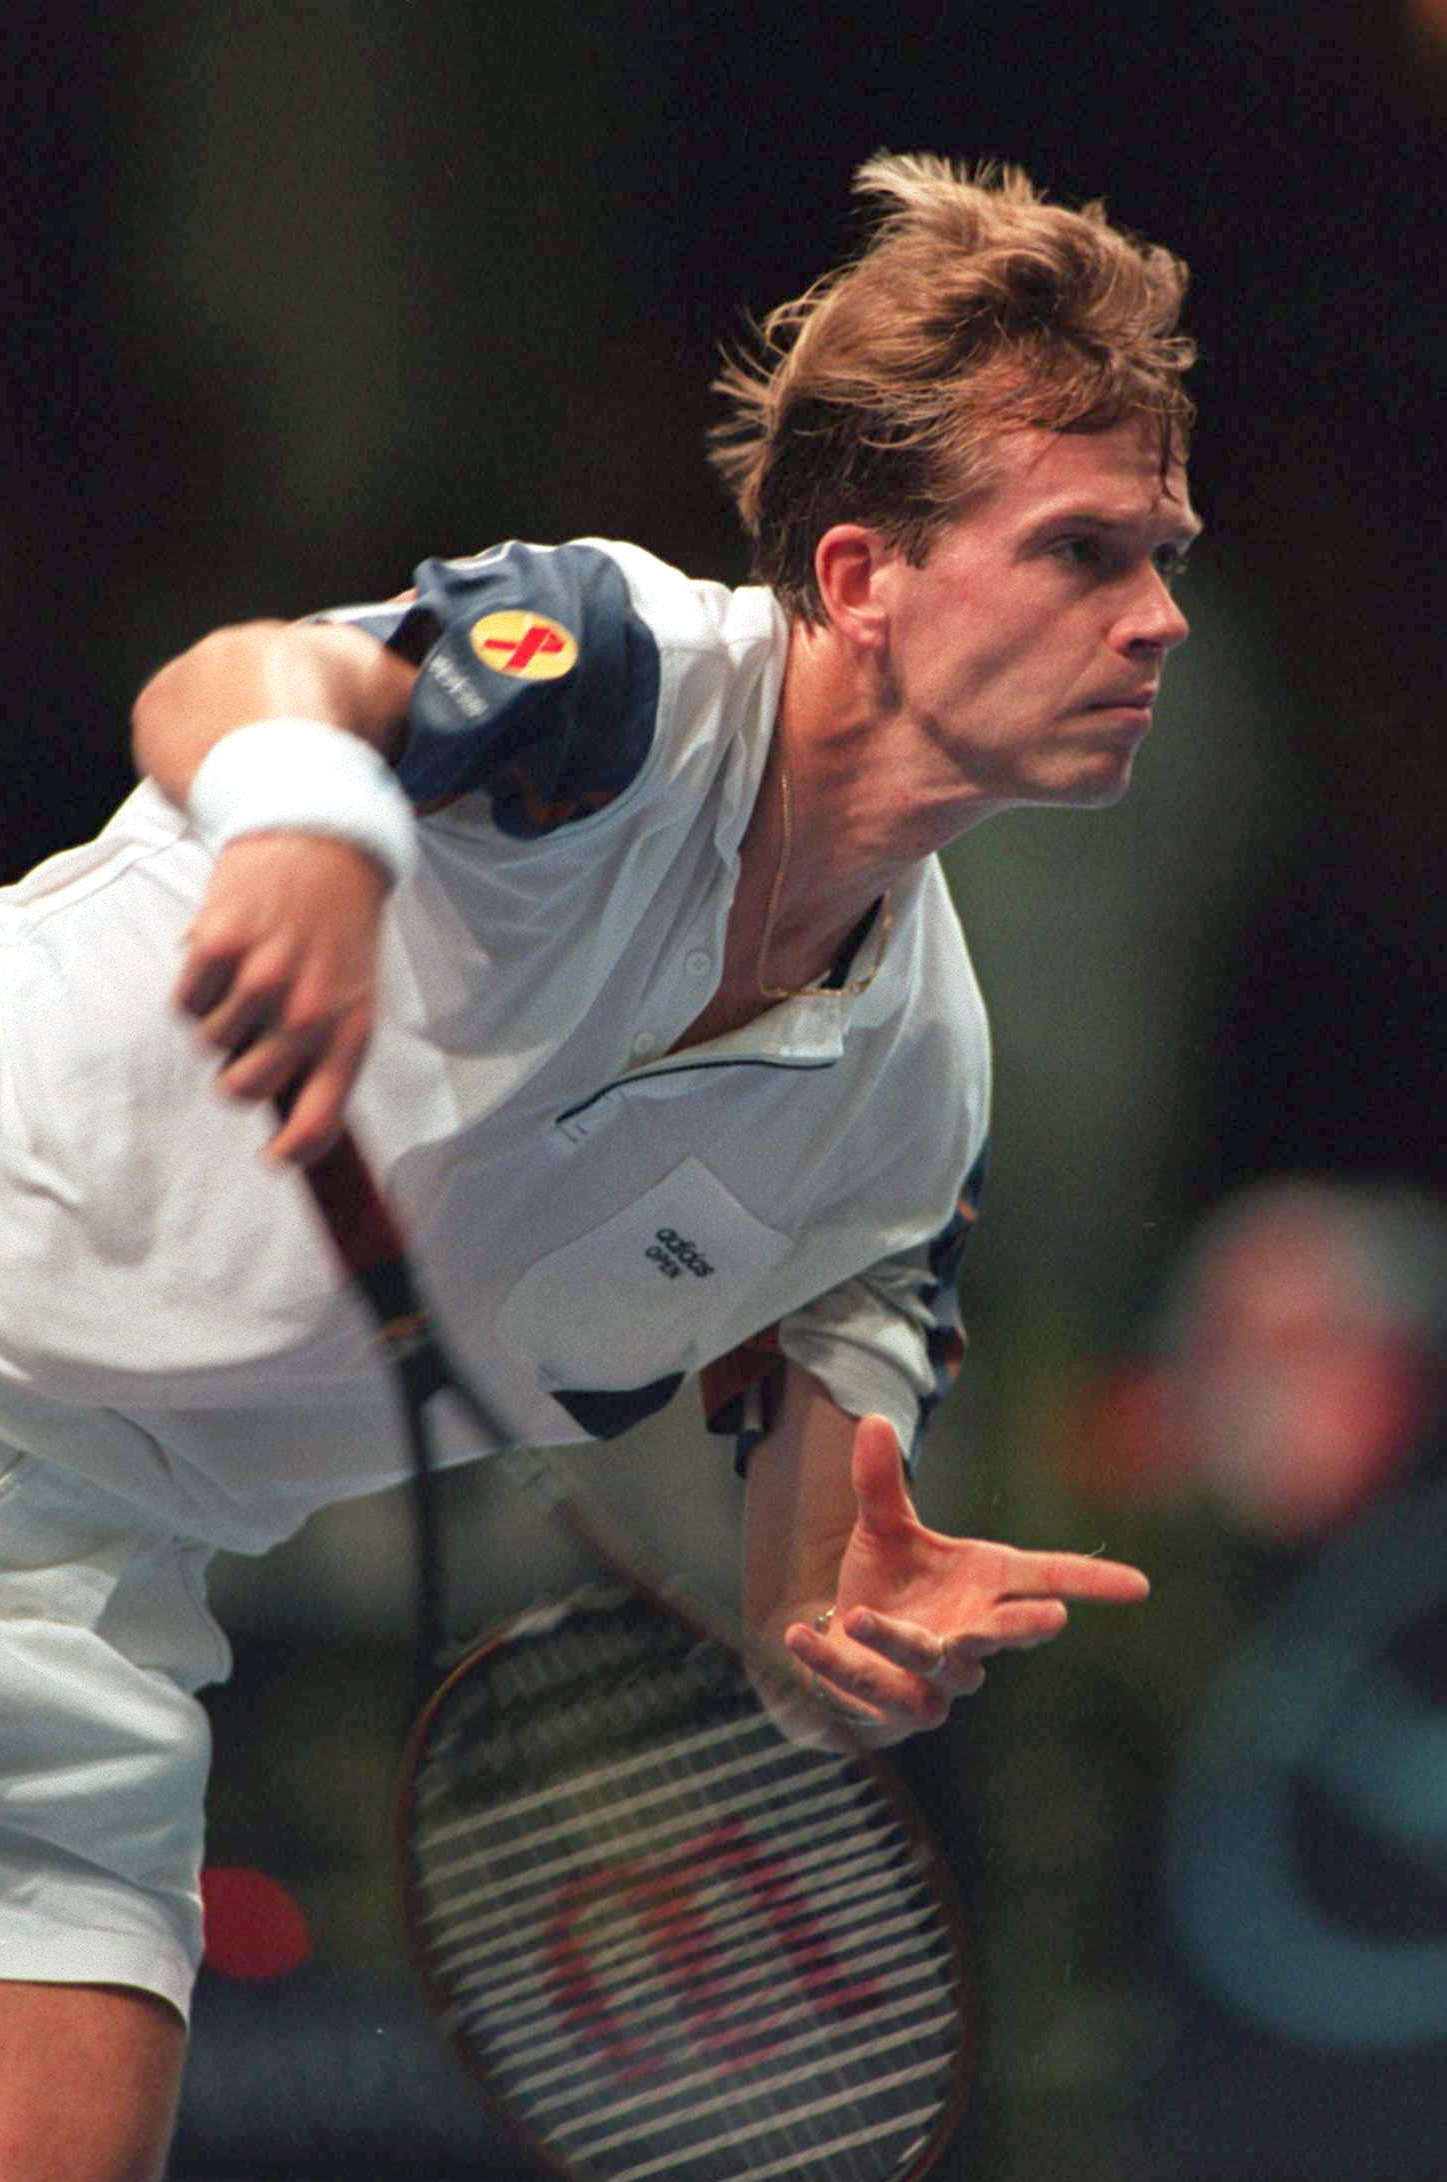 18 NOV 1994:  STEFAN EDBERG OF SWEDEN HITS ANOTHER BIG SERVE DURING HIS MATCH WITH BORIS BECKER OF GERMANY DURING THE ATP WORLD CHAMPIONSHIP IN FRANKFURT, GERMANY.  BECKER WON THE MATCH IN 3 SETS Mandatory Credit: Clive Brunskill/ALLSPORT